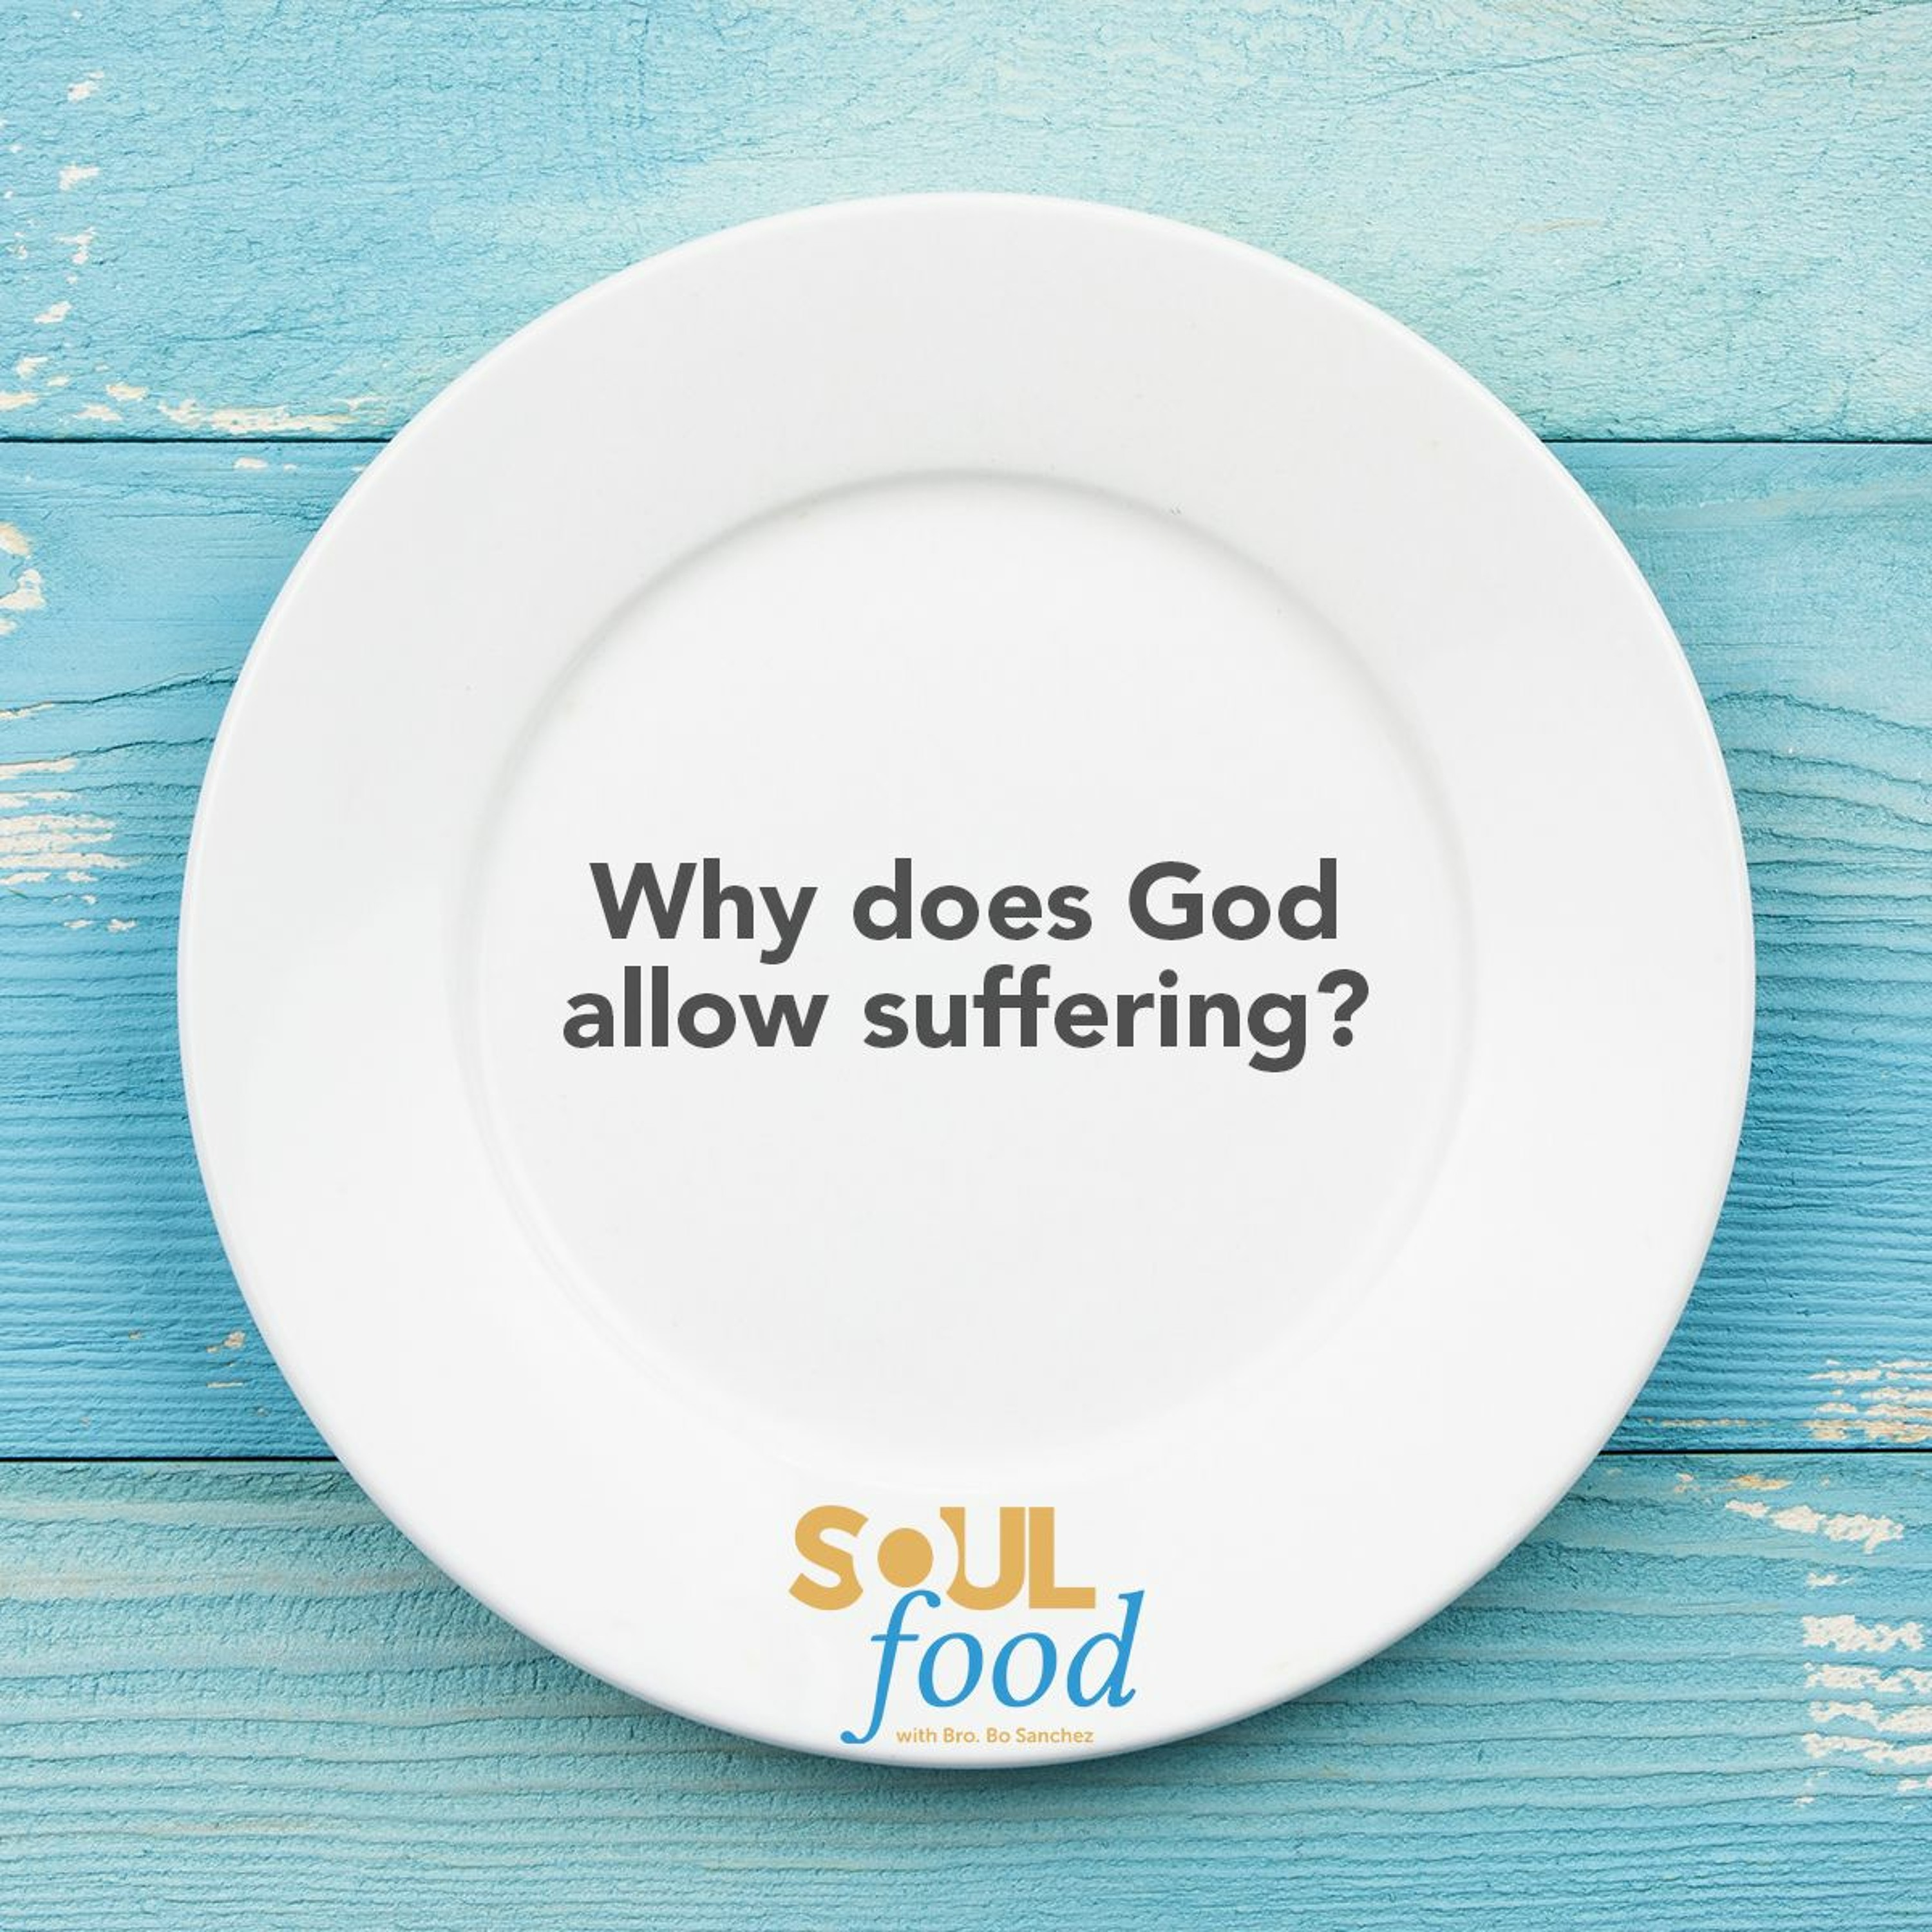 Soul Food S01E38 Why does God allow suffering?